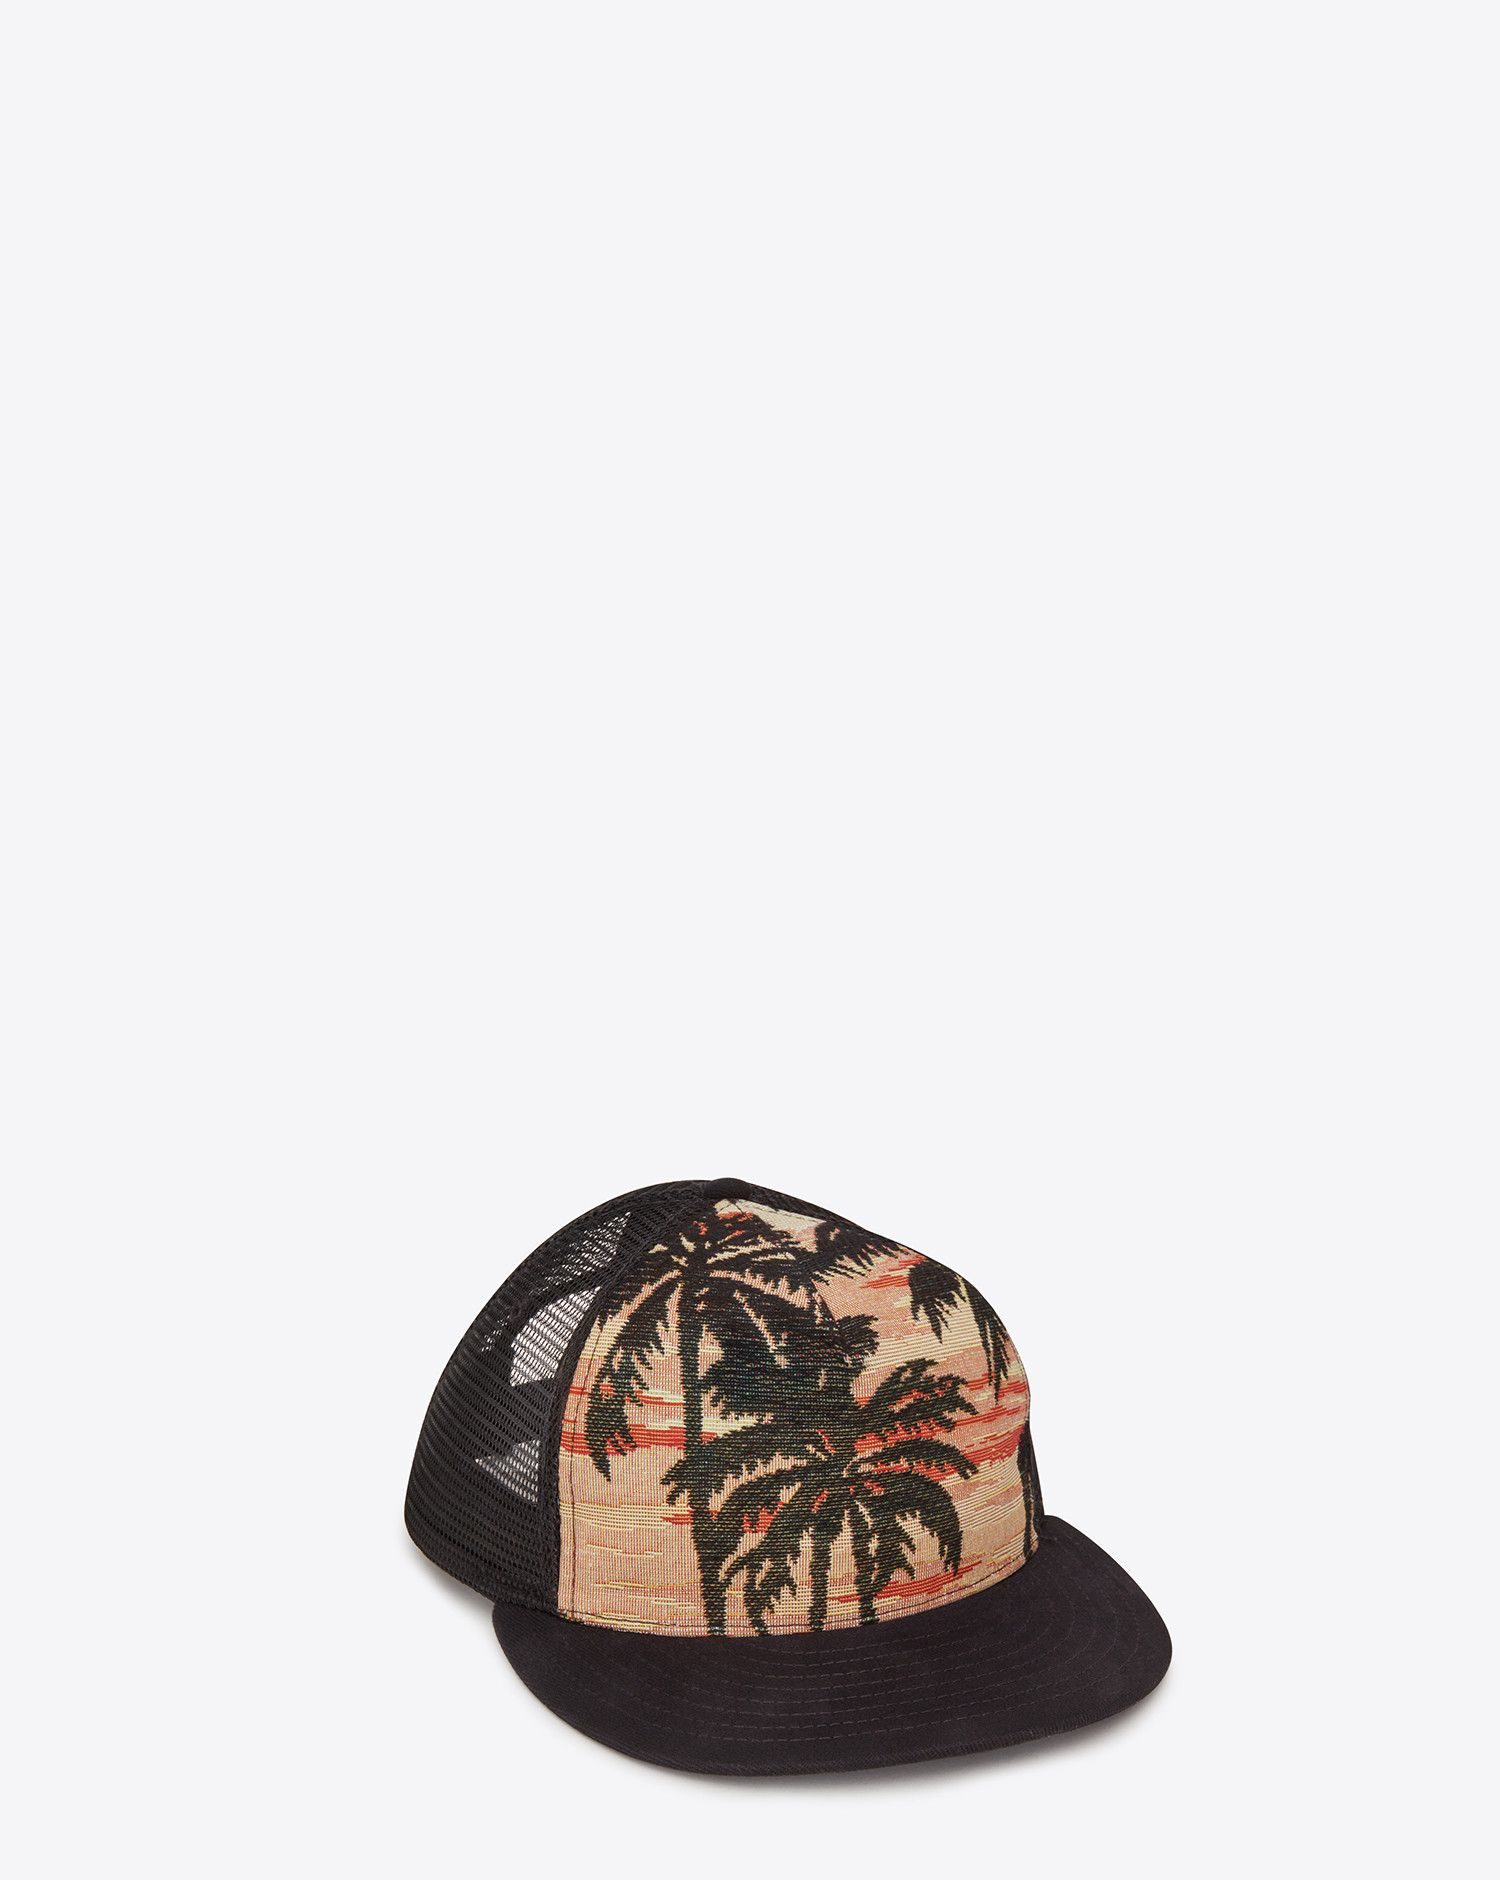 Saint Laurent Trucker Hat In Orange And Multicolor Palm Trees At Sunset  Cotton And Polyester Woven Jacquard  d374f4c0626